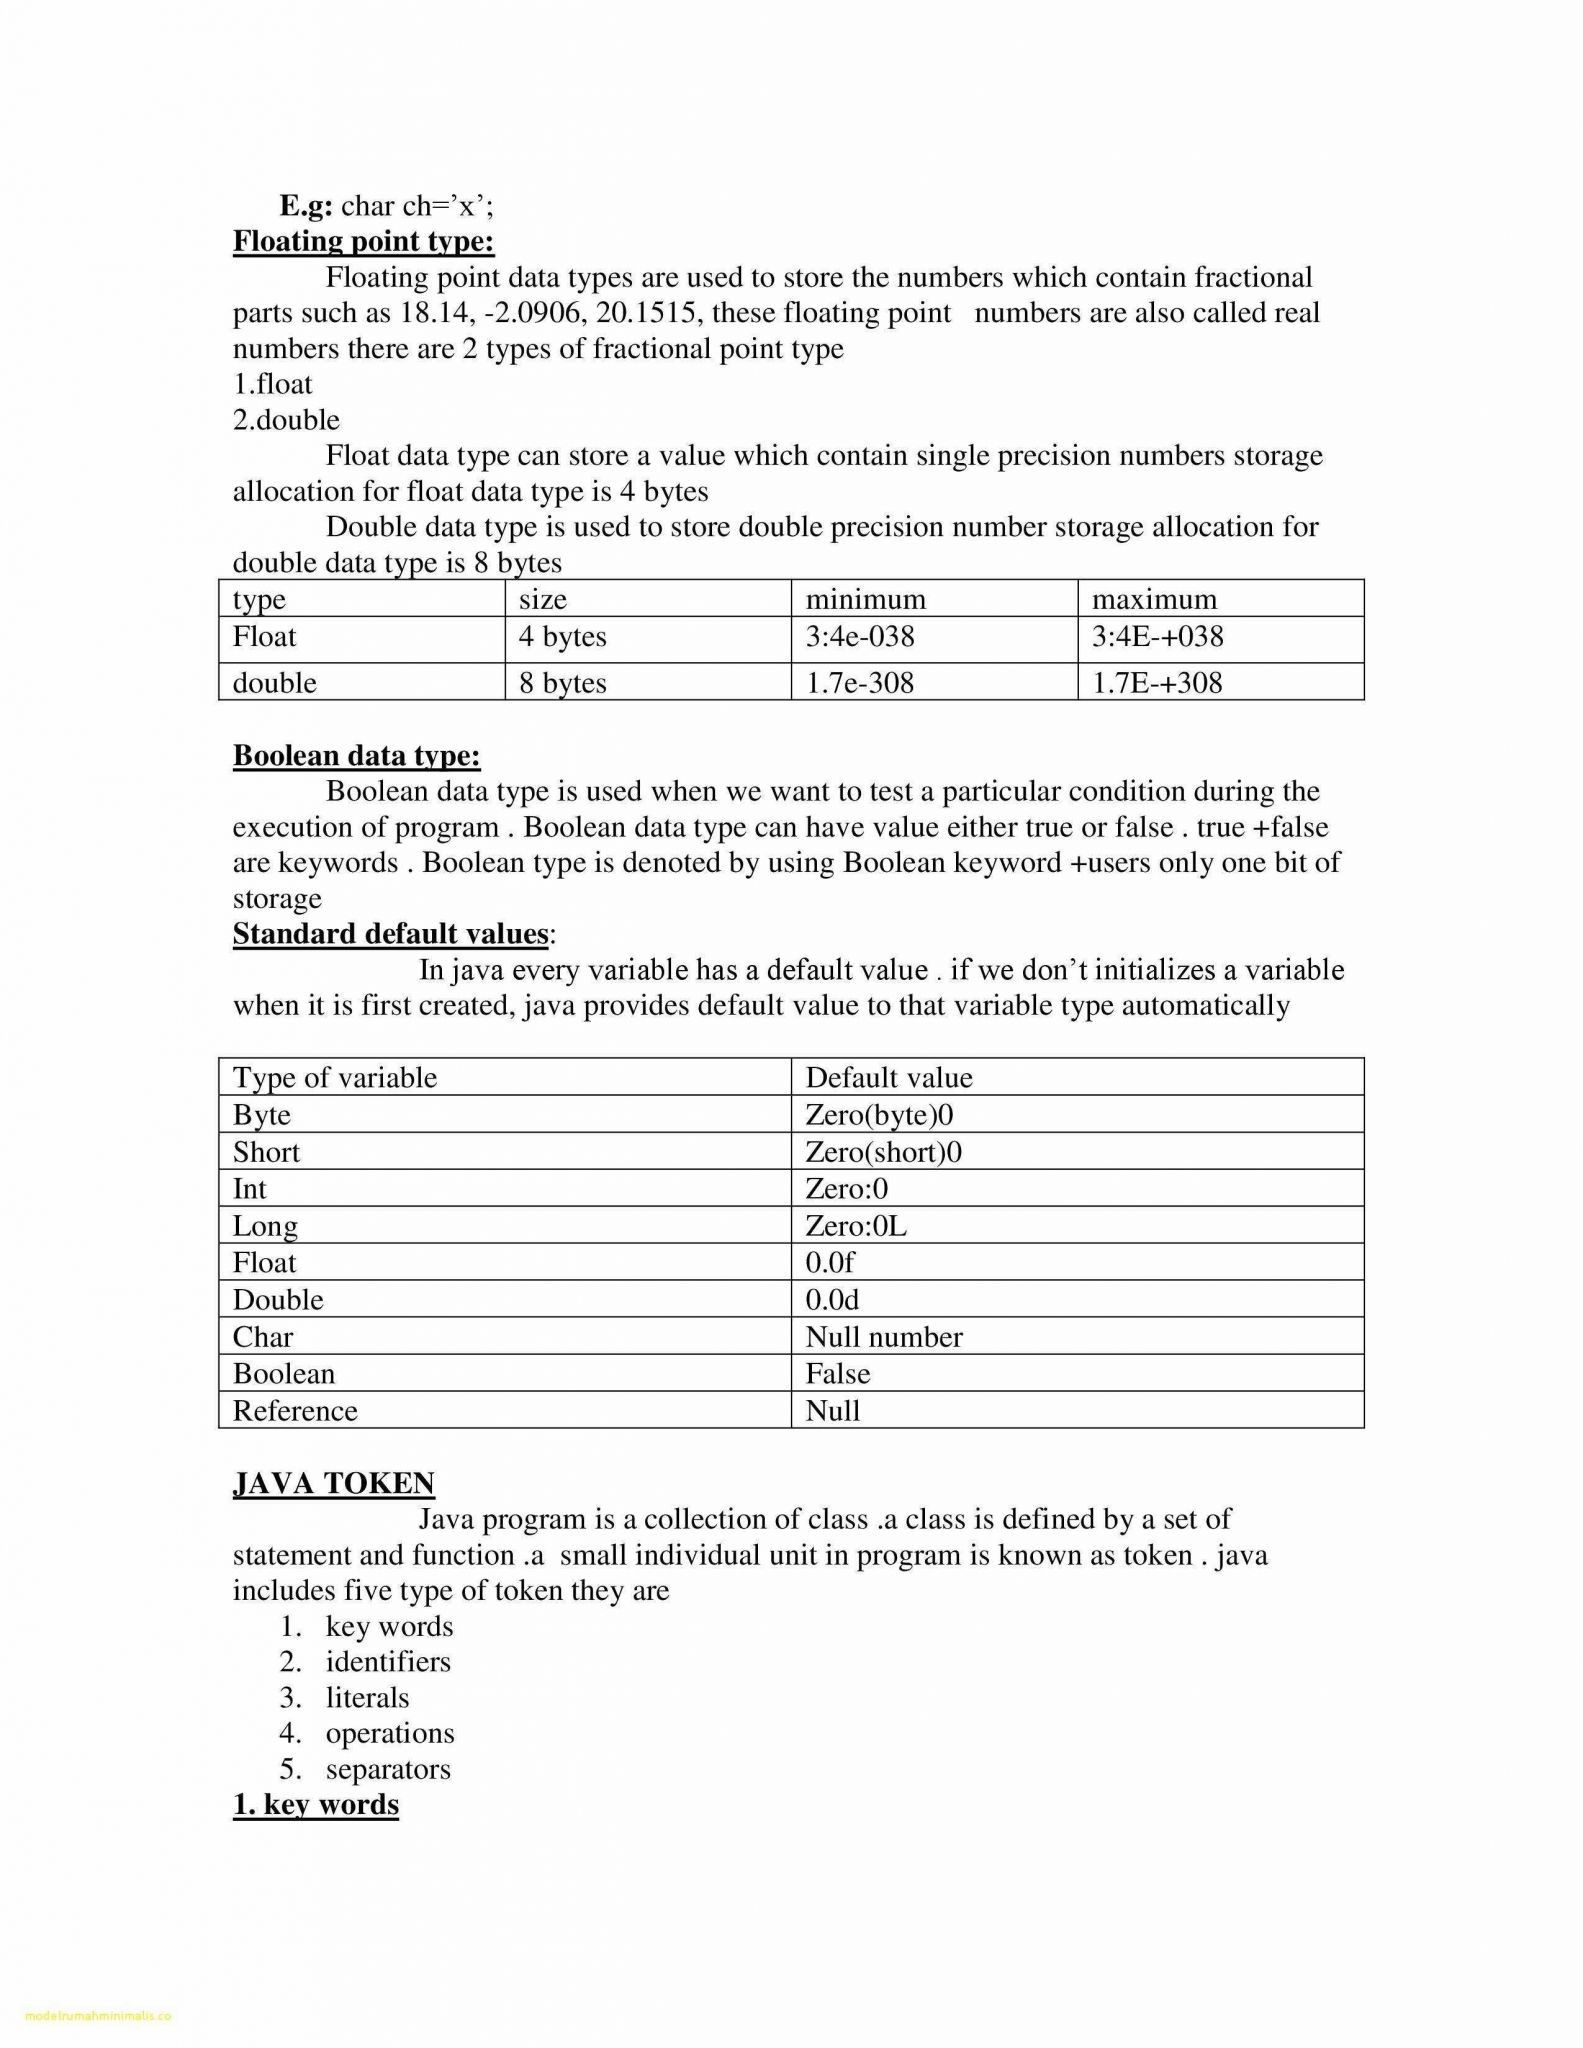 Four Fours Worksheet Answers 23 New Excel Worksheet Functions Inspirational Types Of Chemical Reactions Worksheet Remove Or You Might Choose To Include The